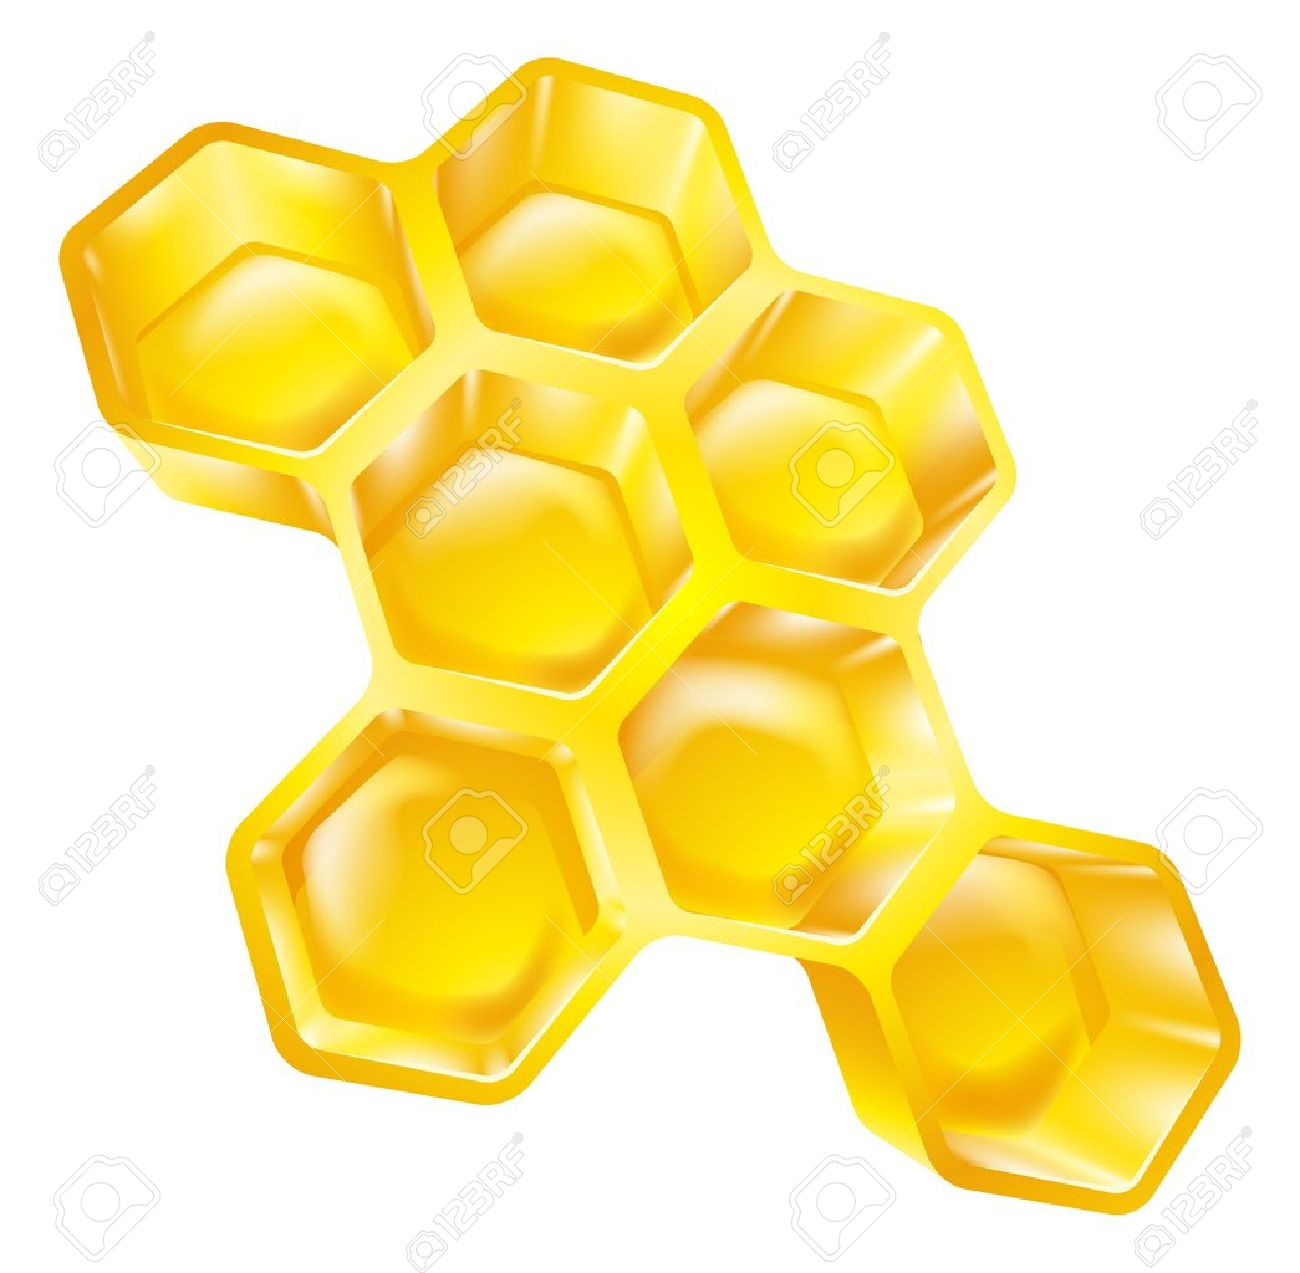 Illustration Of Bees Wax Honeycomb Full Of Delicious Honey Royalty.